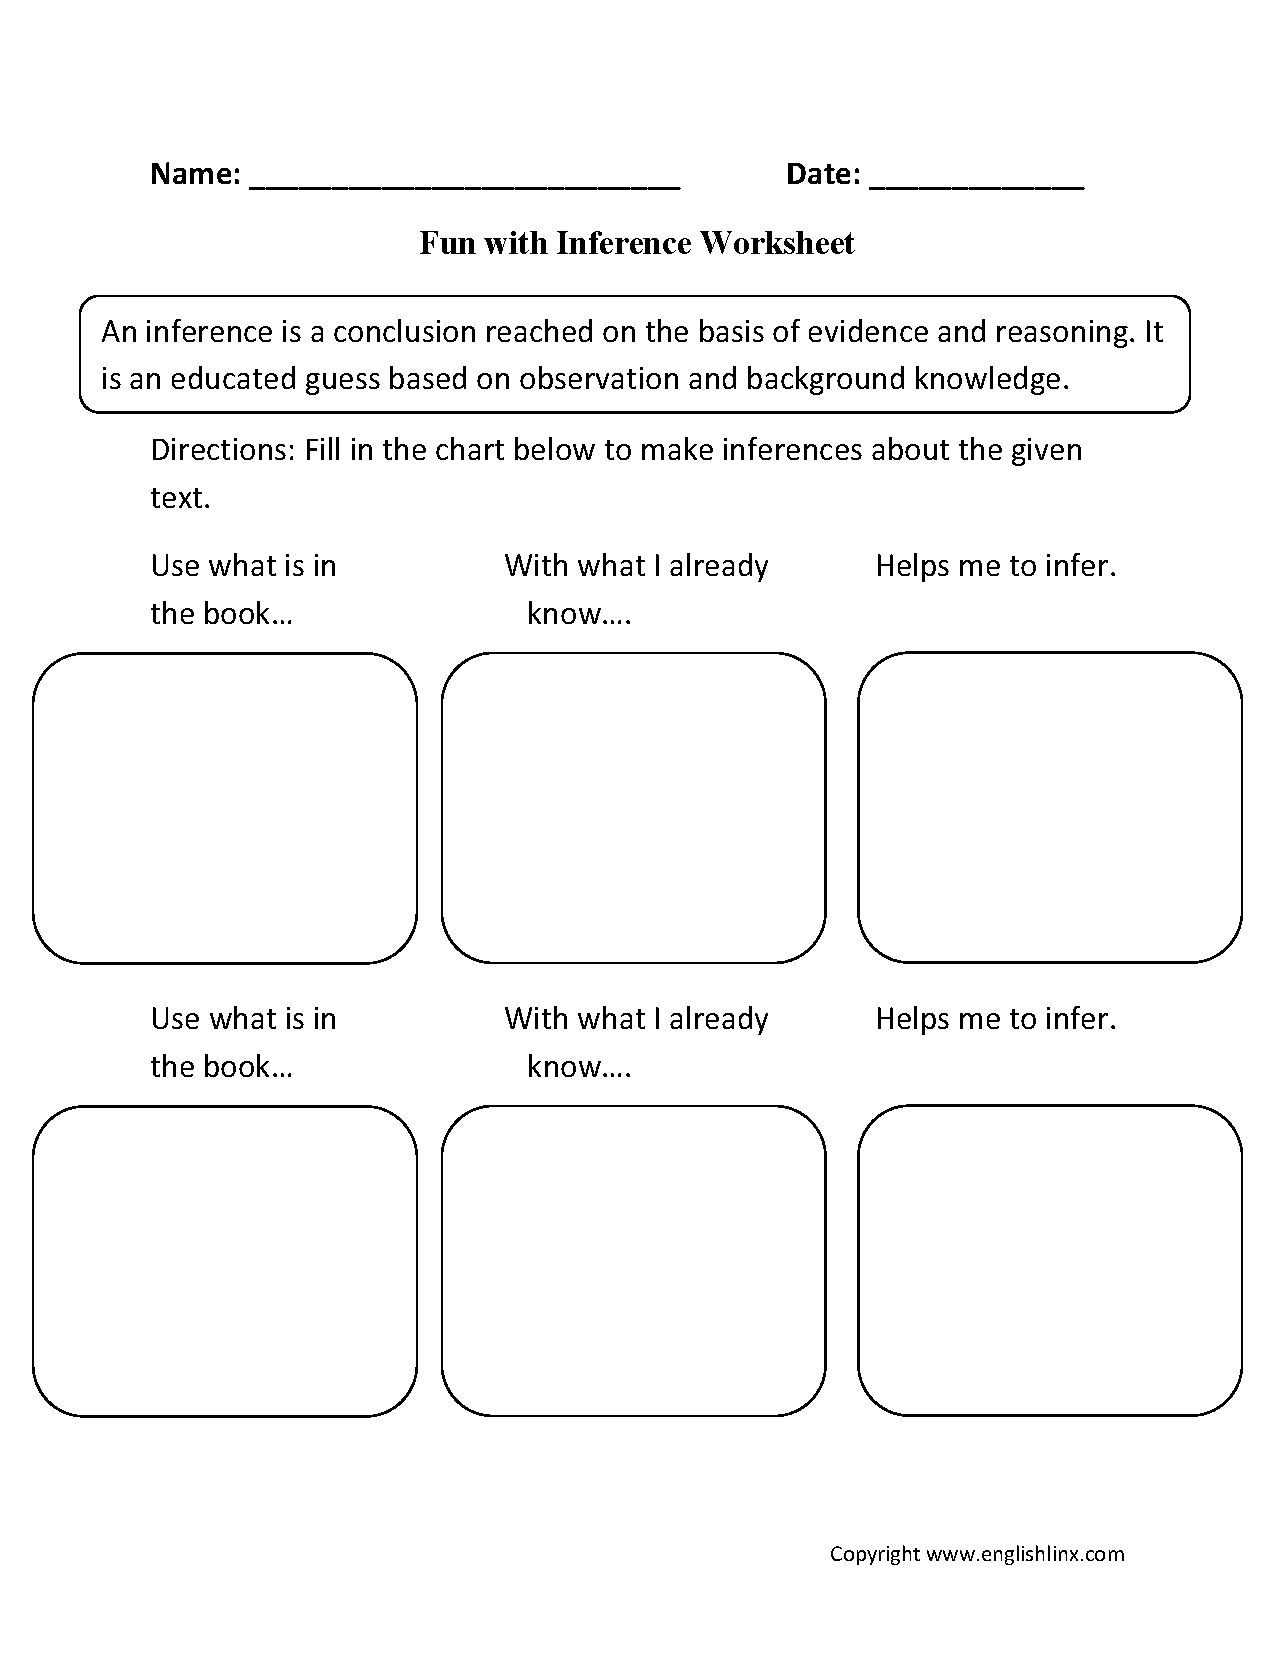 Fun With Inference Worksheets